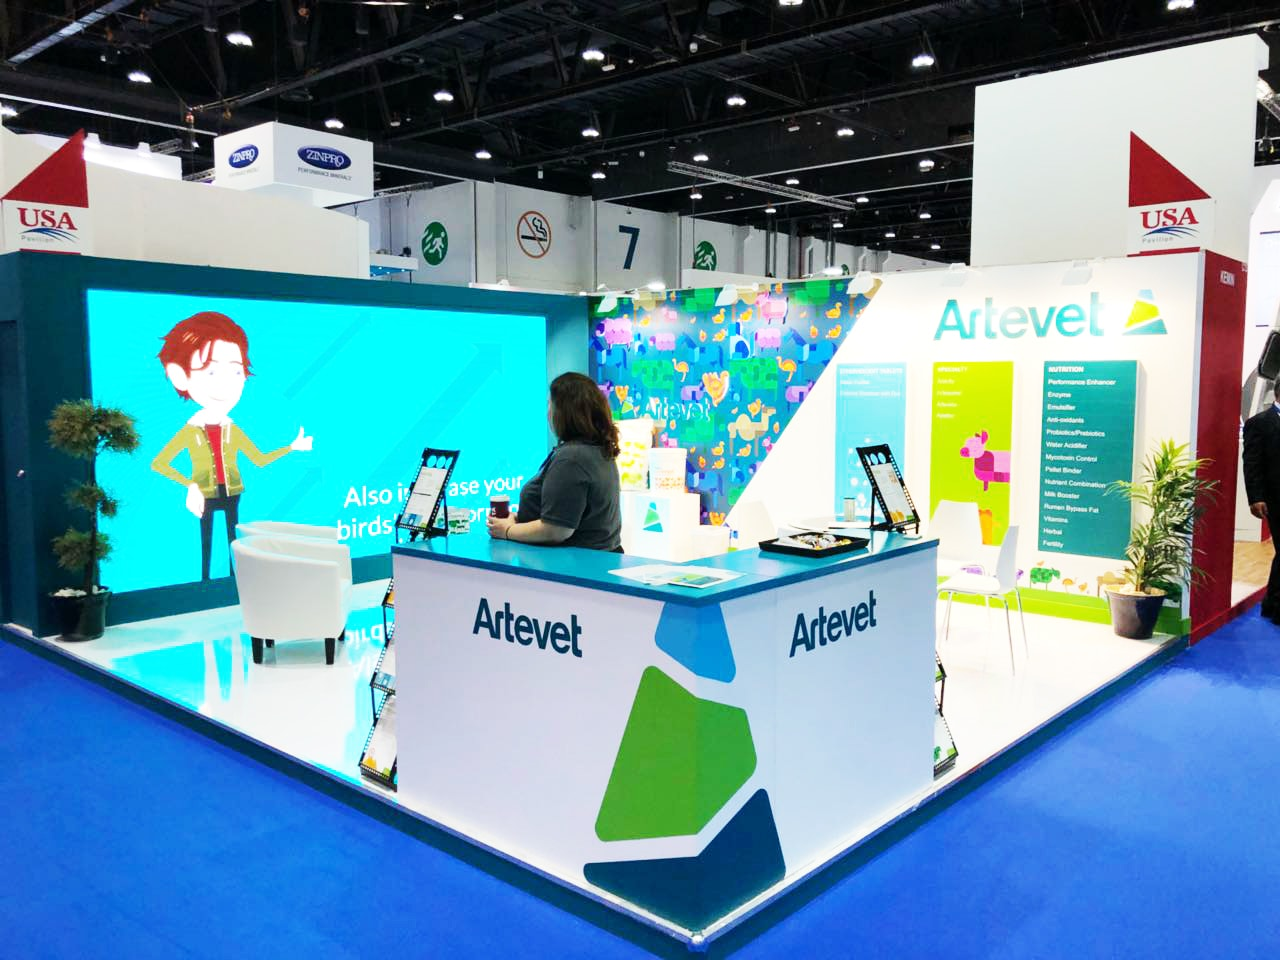 Exhibition Stand Builders Sus : Exhibition stand build and design for artevet